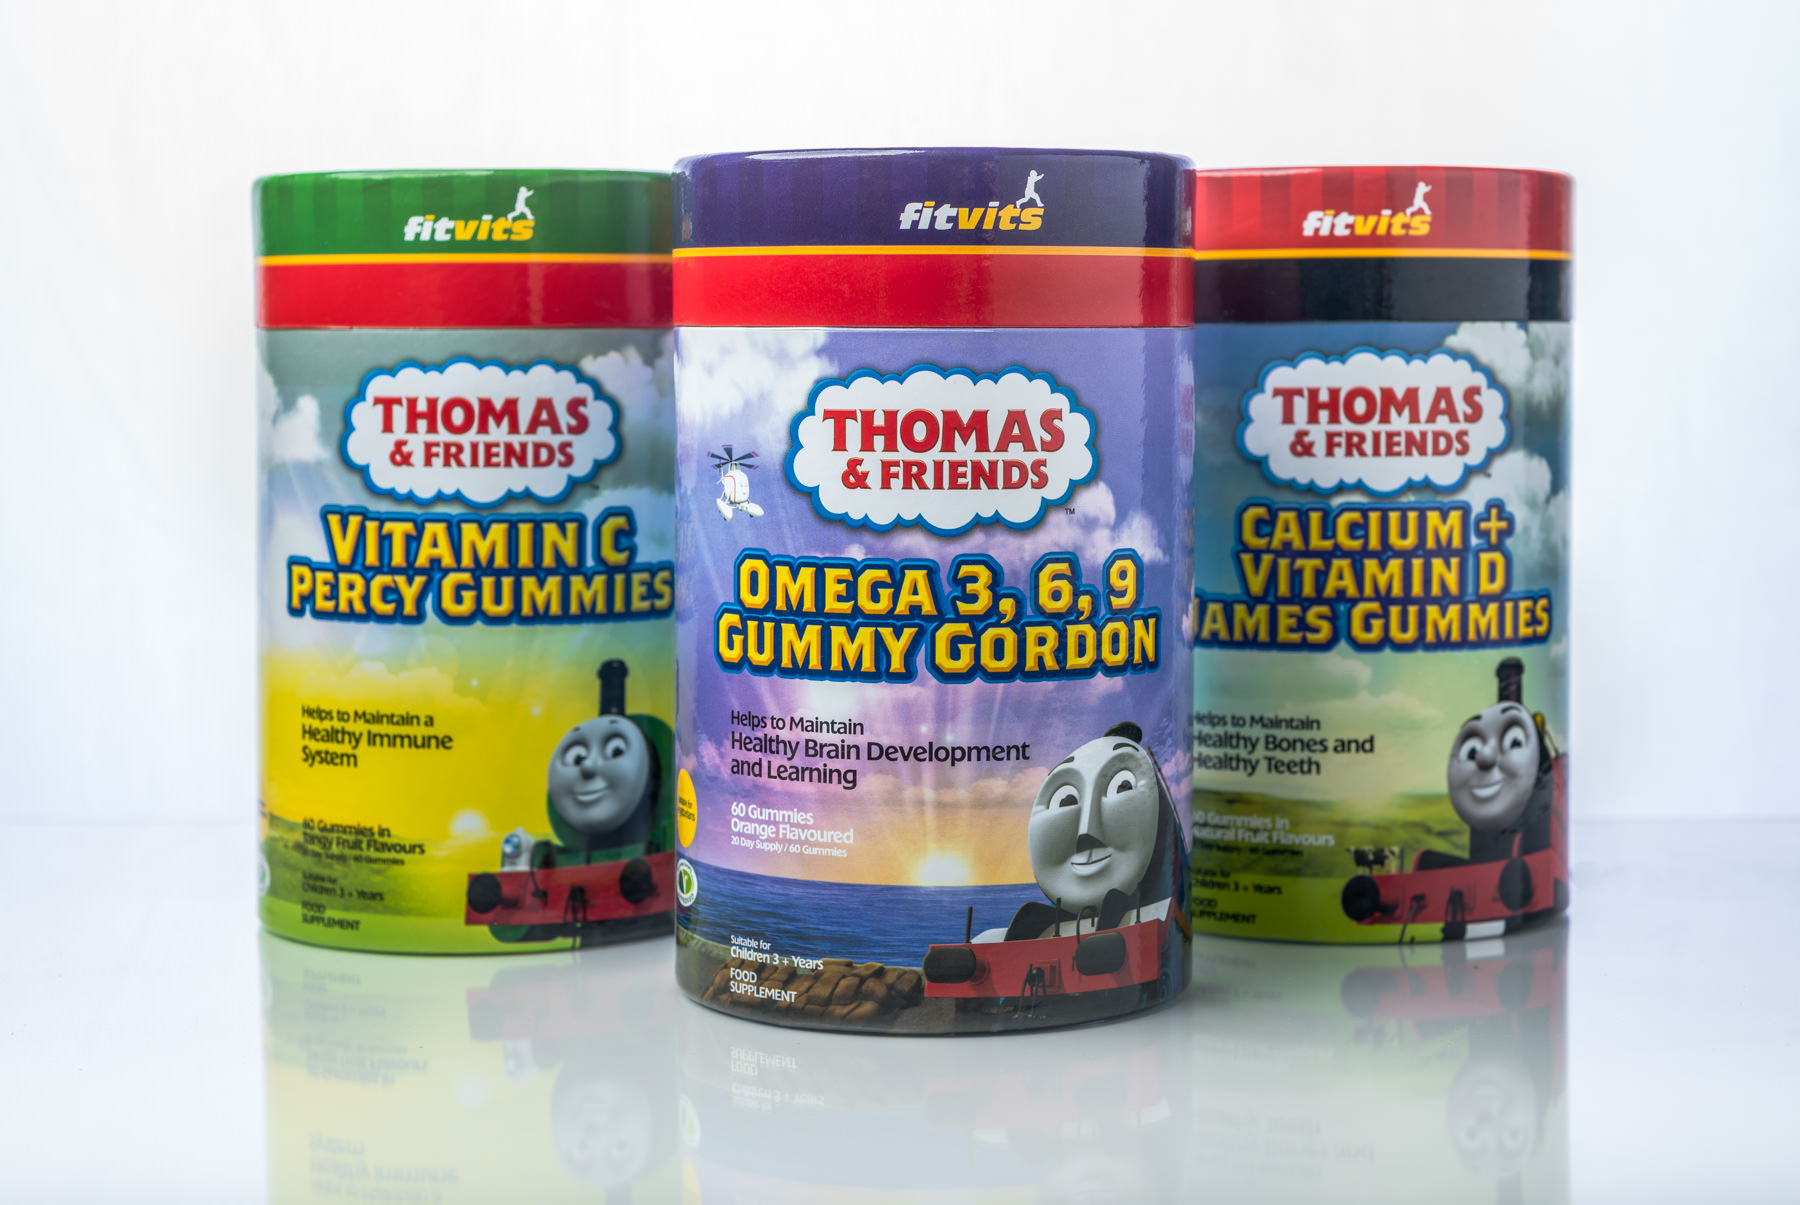 Fitvits Thomas & Friends Gummy Vitamins